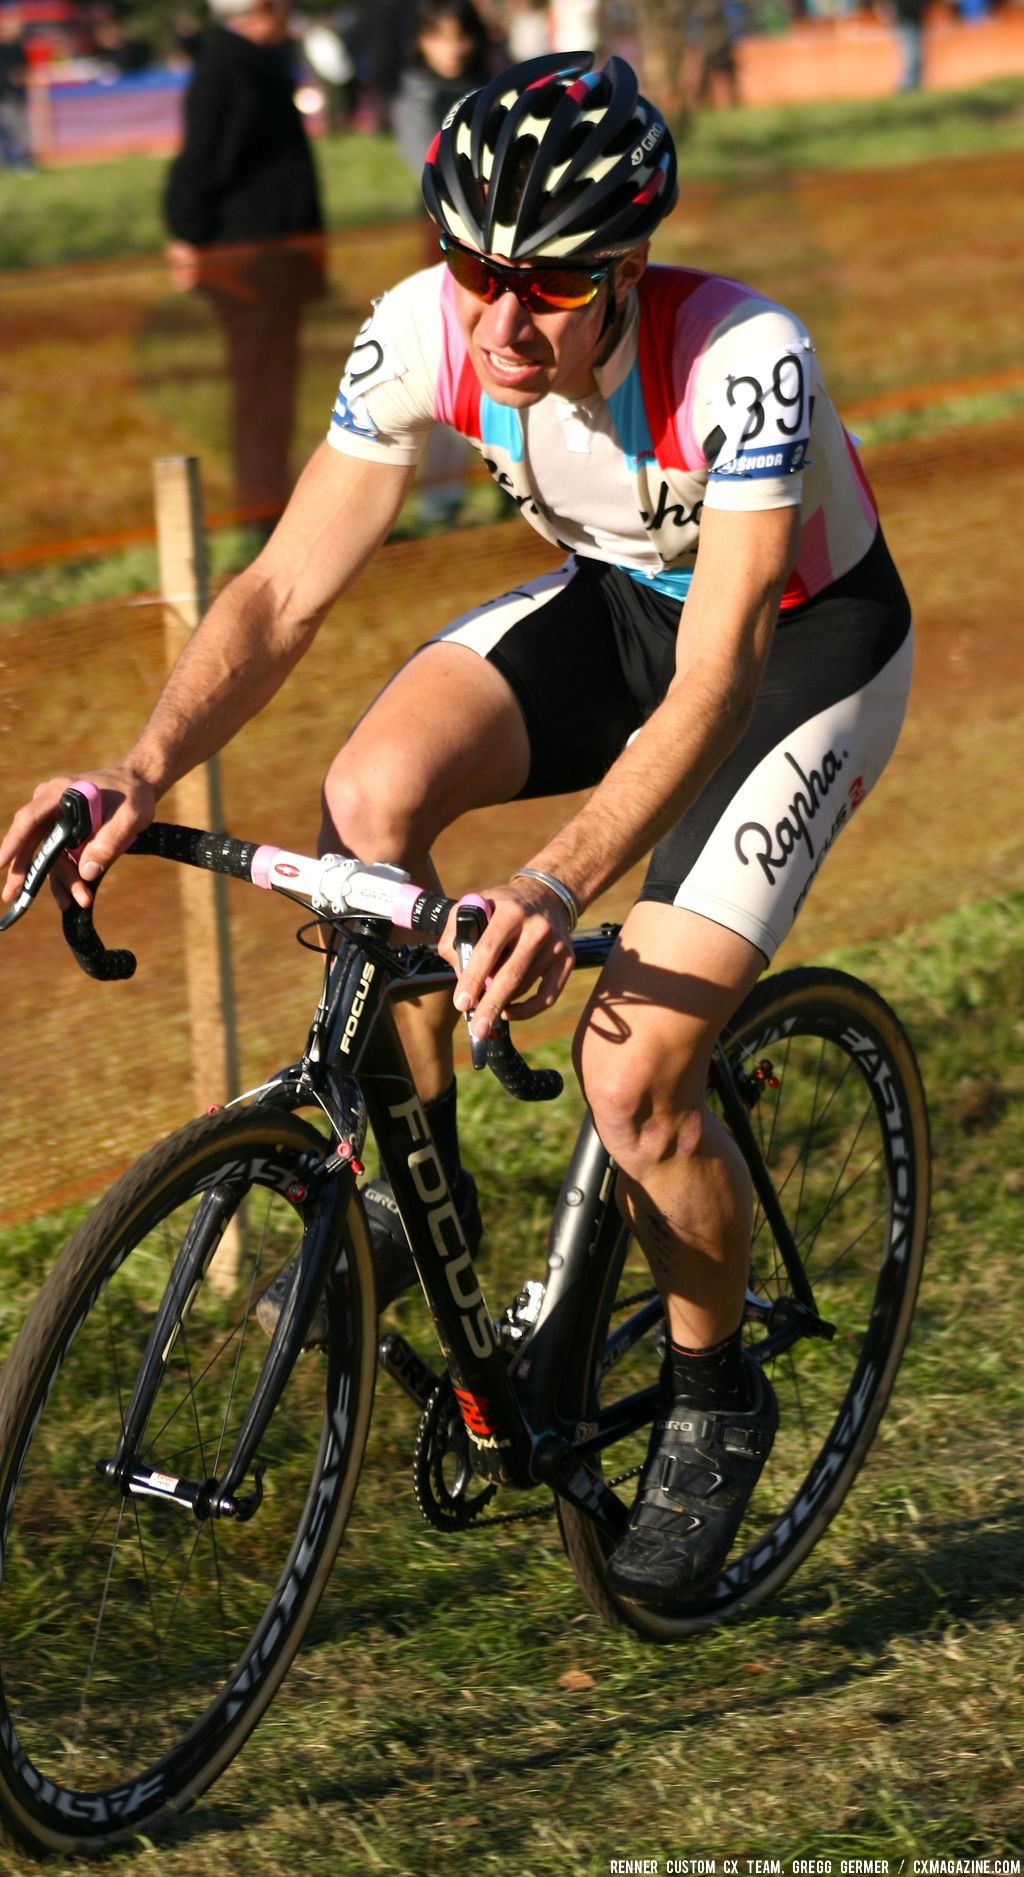 Powers rode among the heads of state to nab a top-10. © Renner Custom CX Team, Gregg Germer